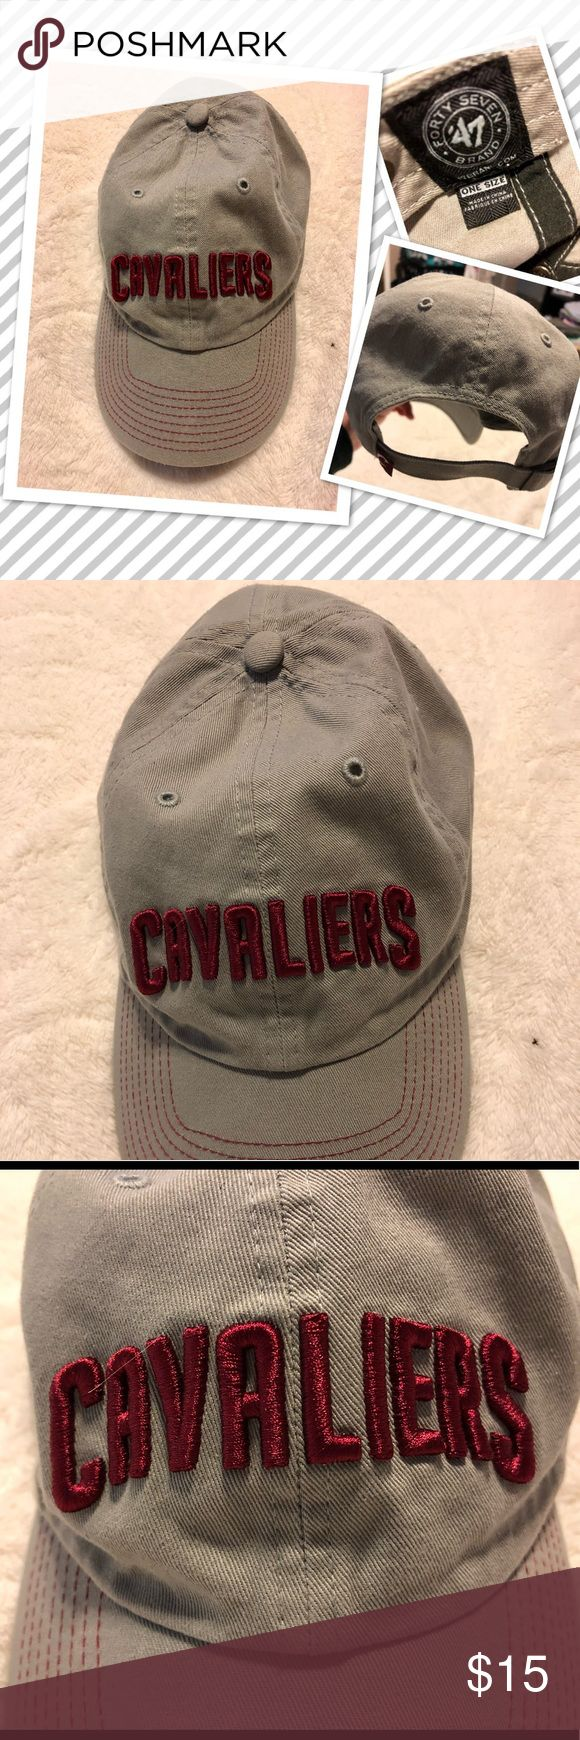 Gray Cavaliers adjustable hat worn once. Great looking gray w/red lettering Cleveland CAVS hat. Bought at a CAVS game-wore it that night only.  Looks brand new. Very comfortable hat-adjustable in the back & cute for men, women or kids.  Selling for a family member but I used to have the same one & it was my favorite❤️ Go CAVS!!! 47 Accessories Hats